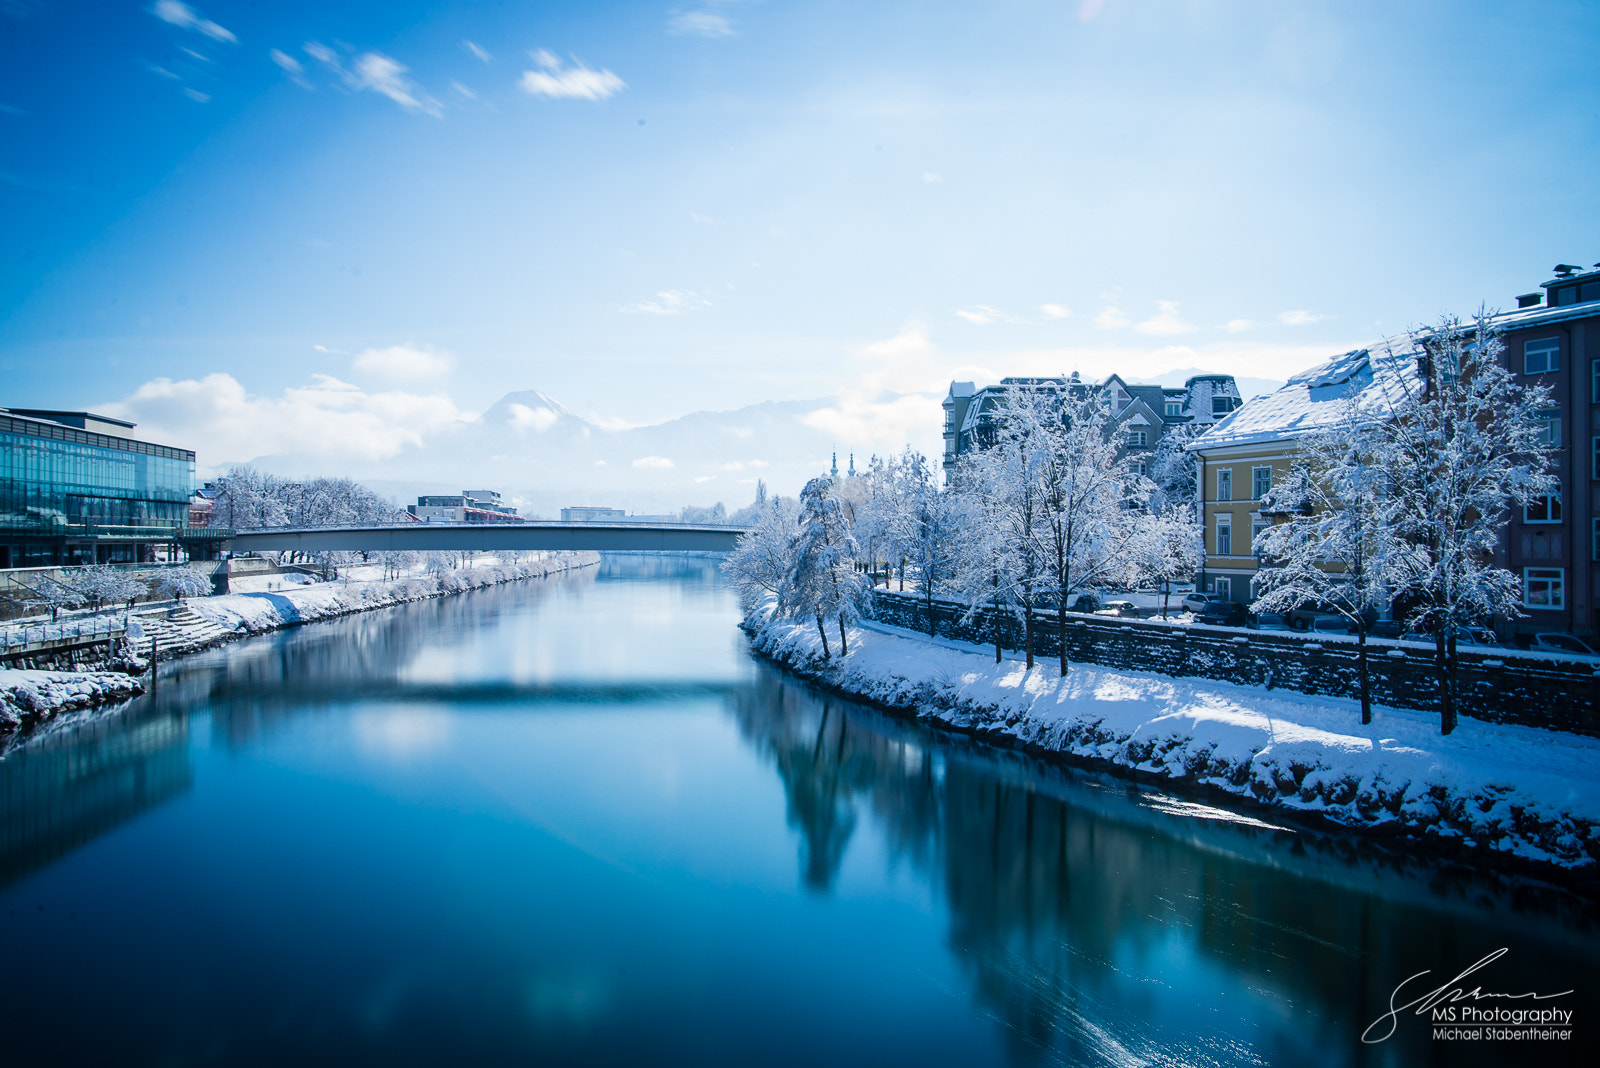 Photograph Ice cold city  by Michael Stabentheiner on 500px